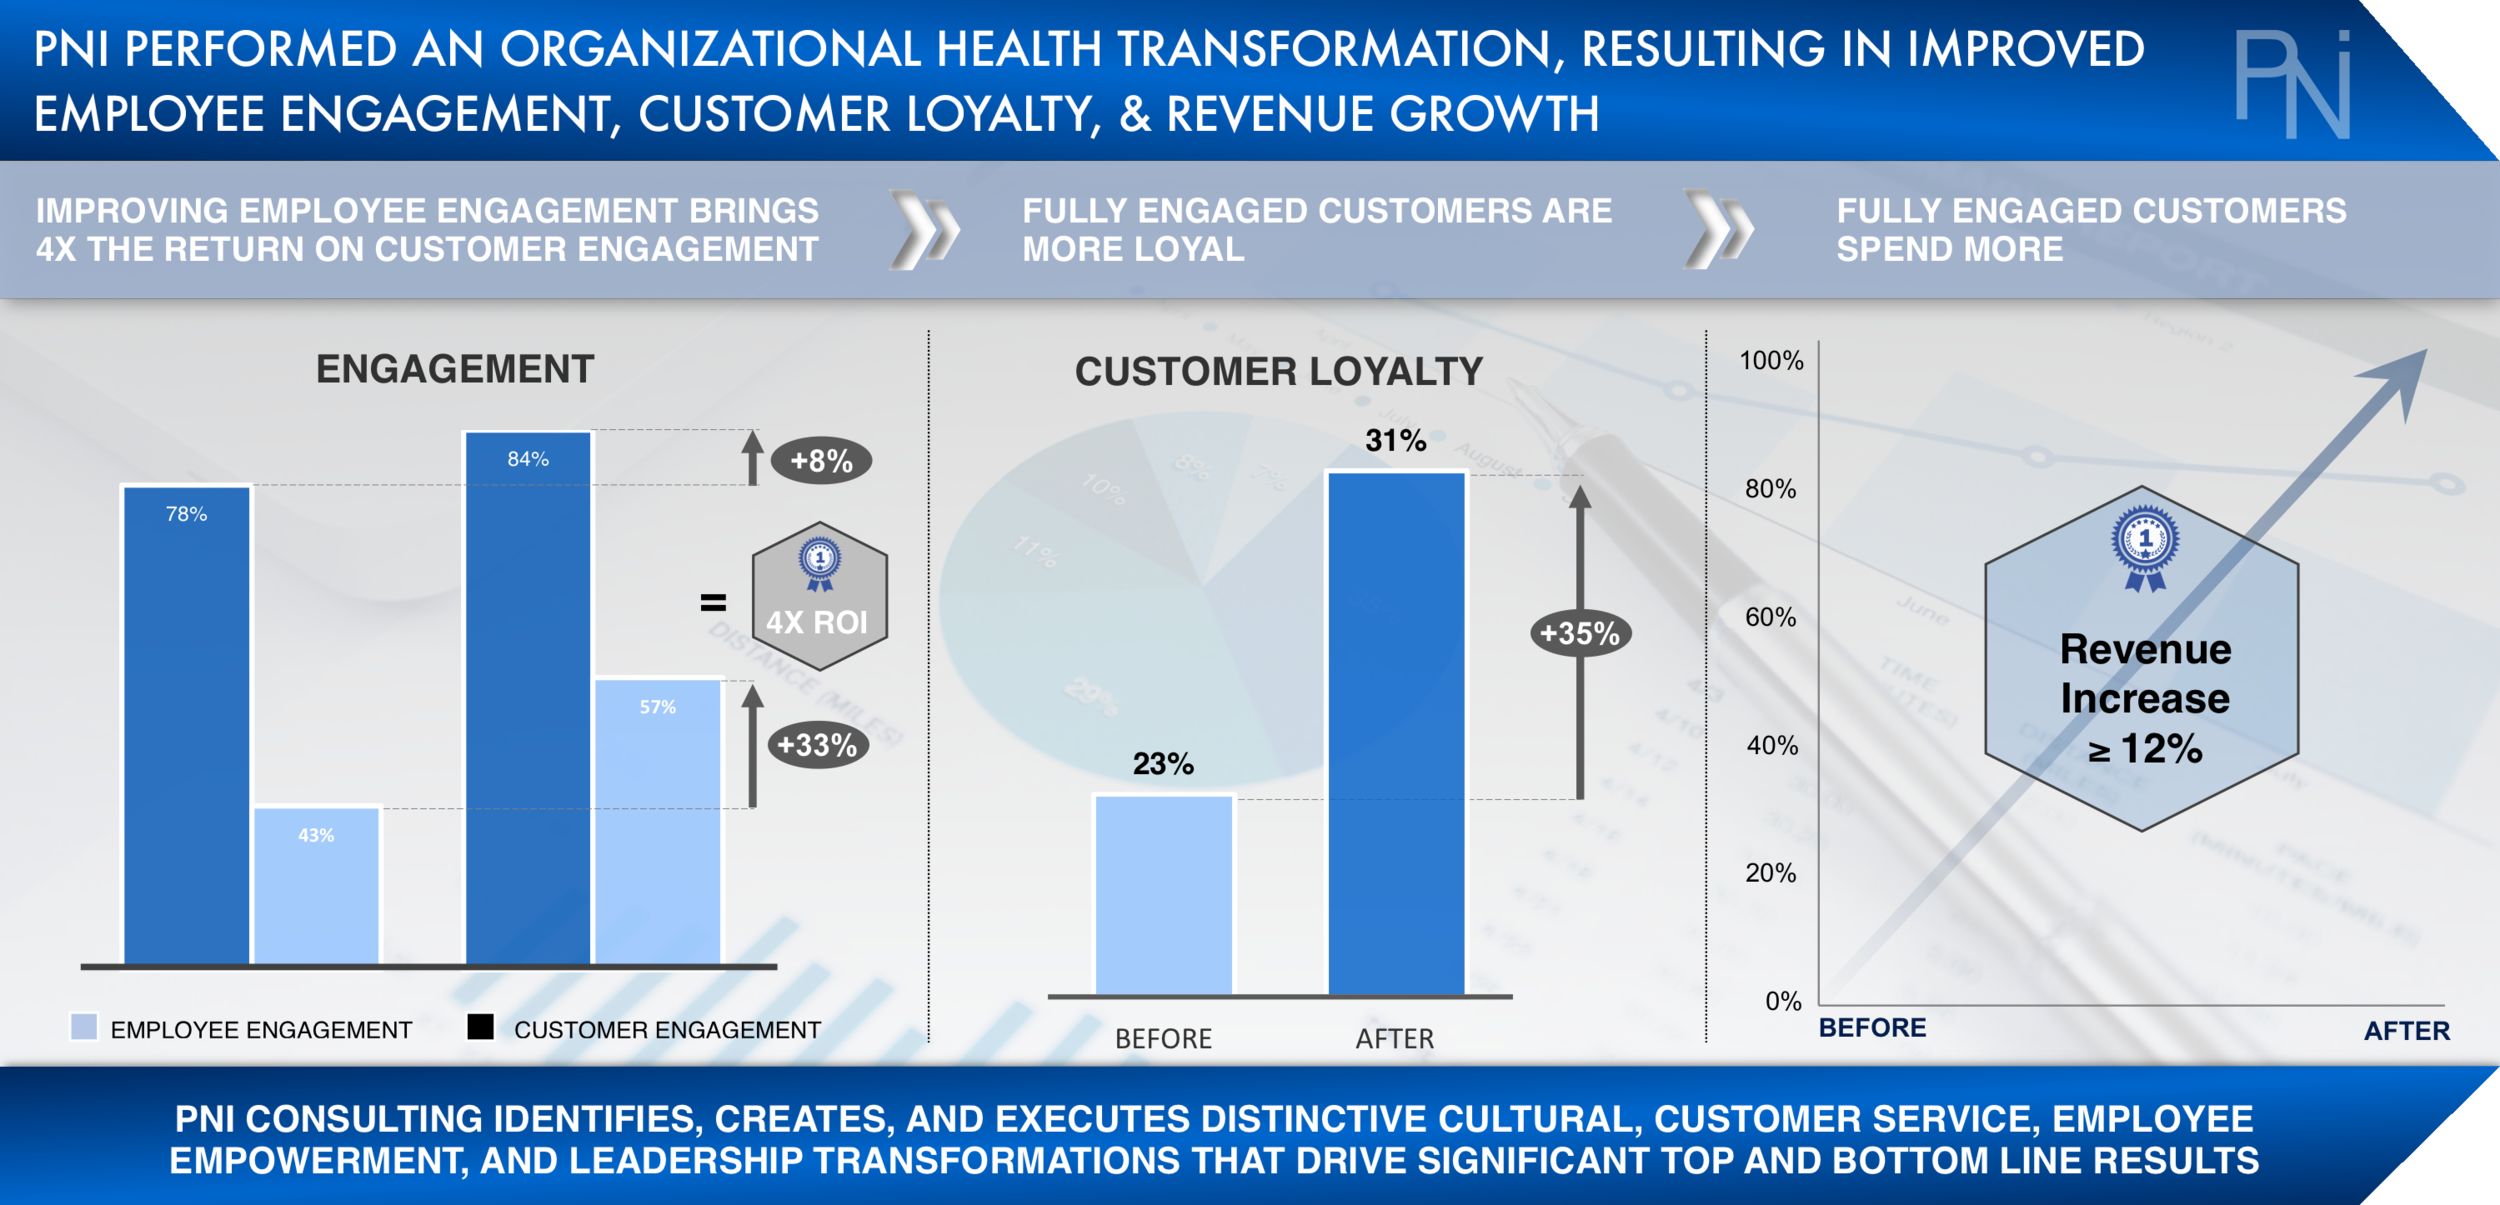 Case Study 3 - Employee Engagement (PNI Consulting).png